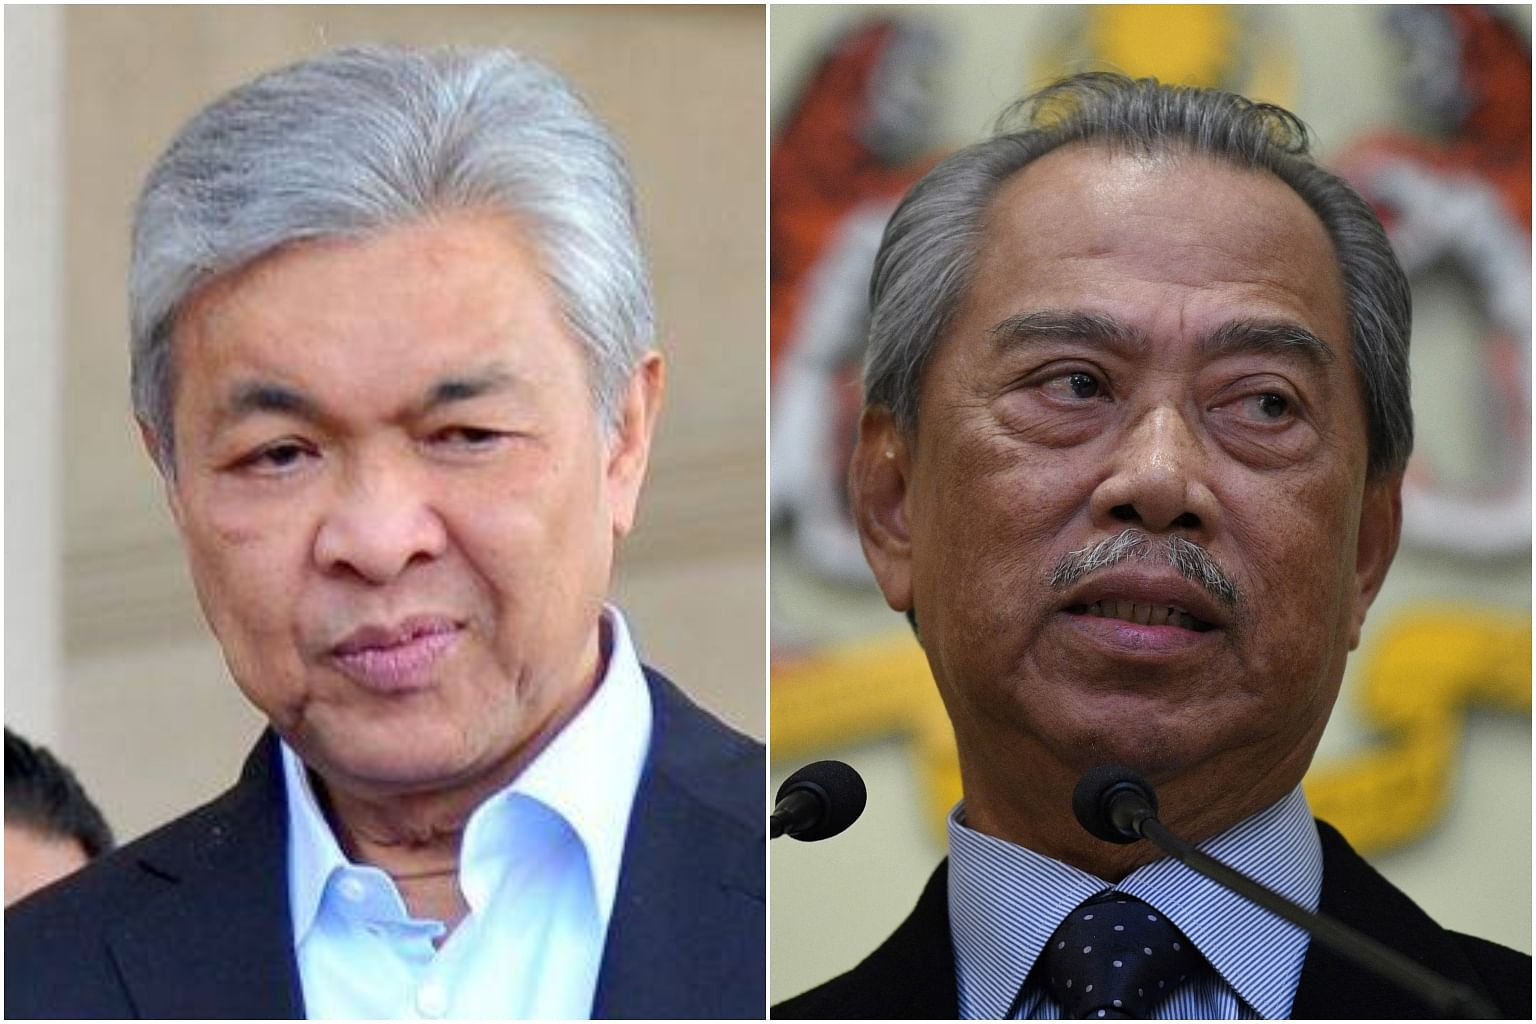 PM Muhyiddin can still exercise executive powers, says Malaysia's A-G, SE Asia News & Top Stories - The Straits Times